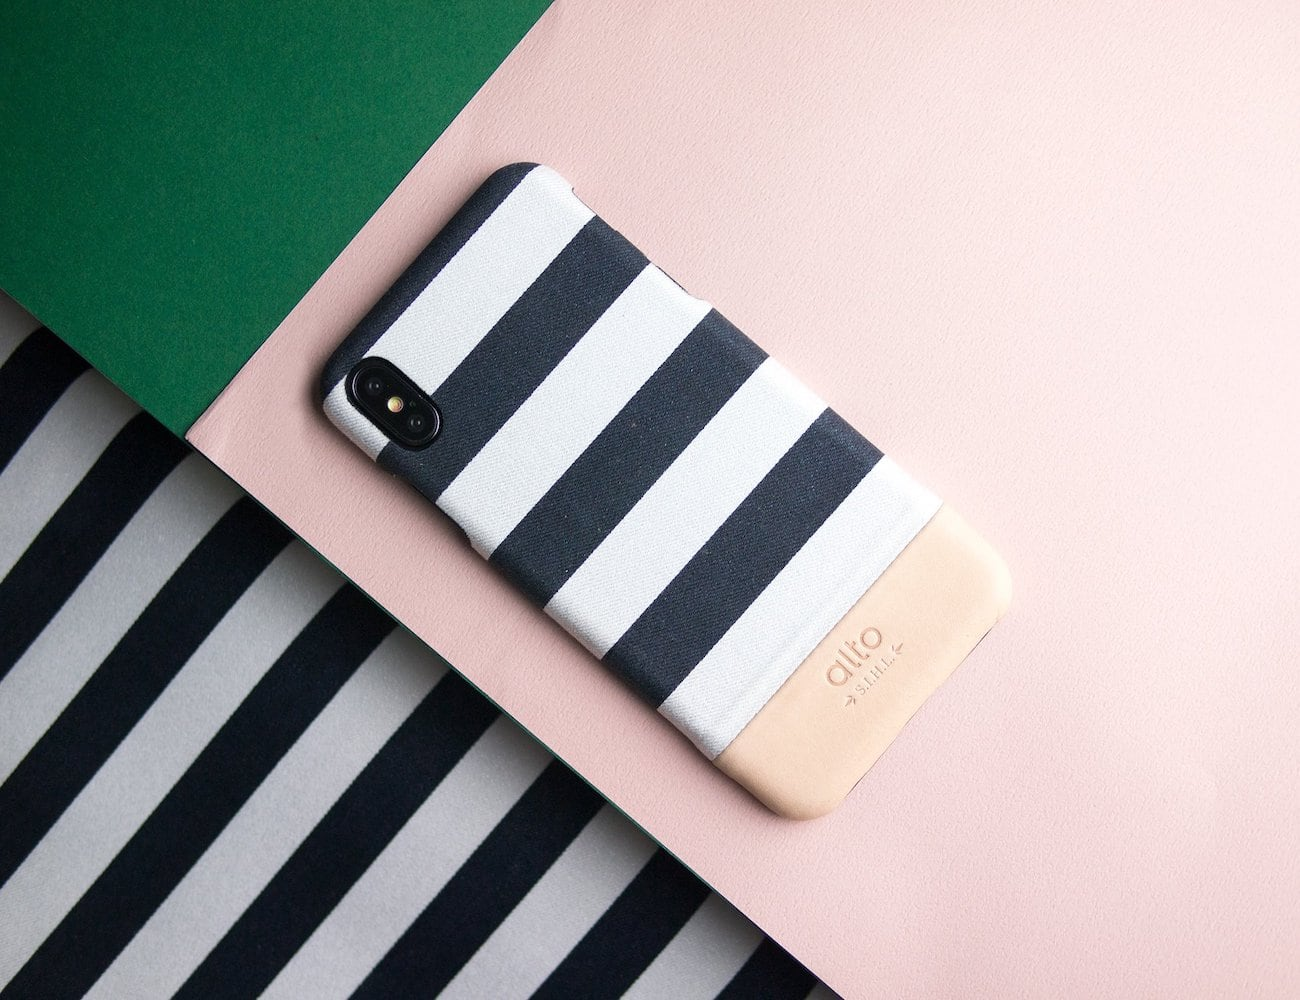 Alto Denim Leather Case iPhone XS Max Collection offers chic protection for your smartphone